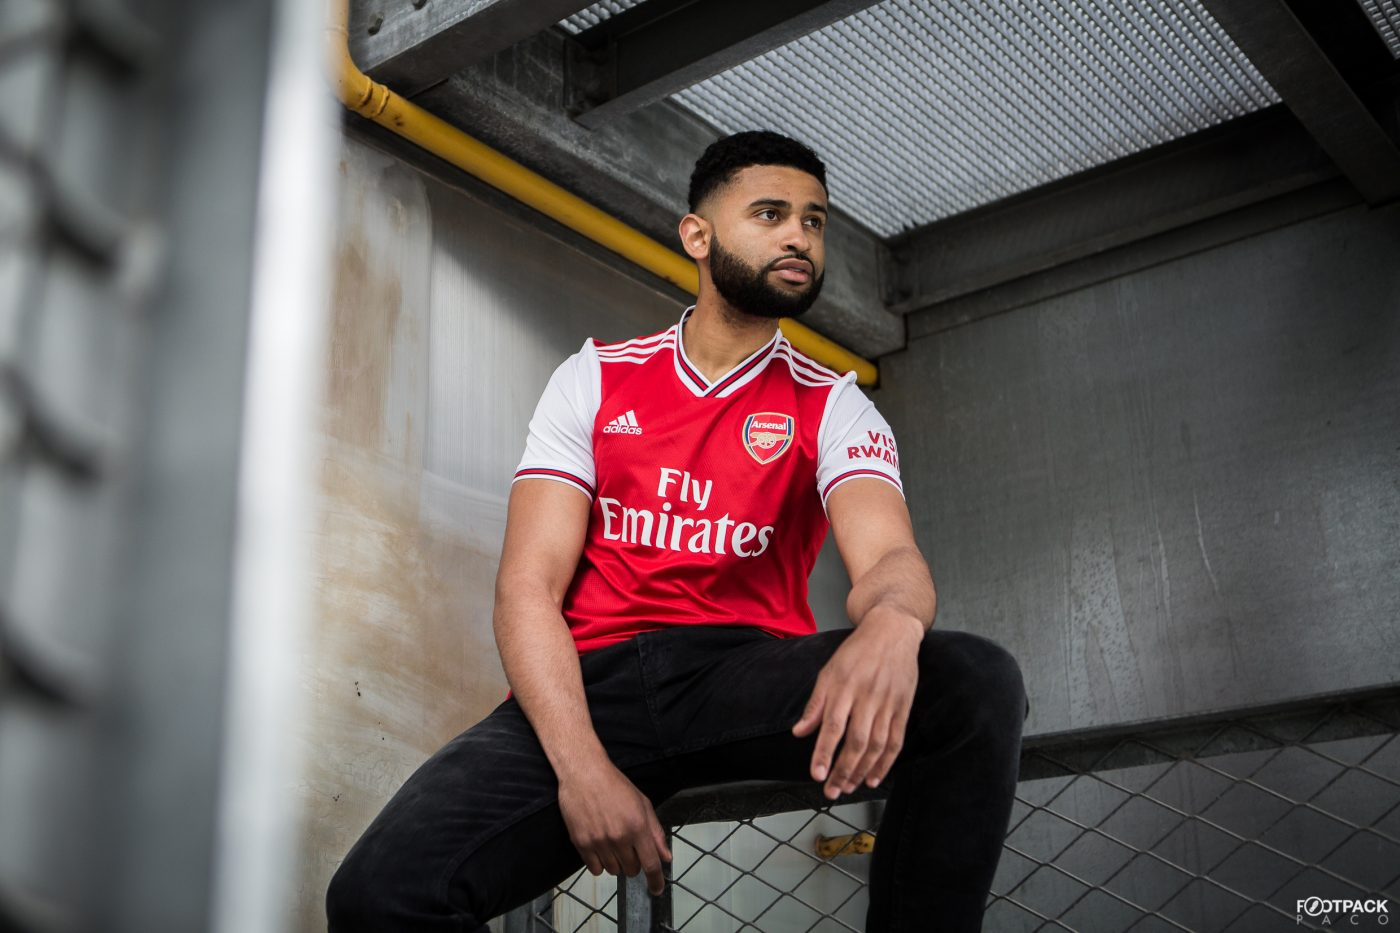 maillot-domicile-arsenal-2019-2020-adidas-2